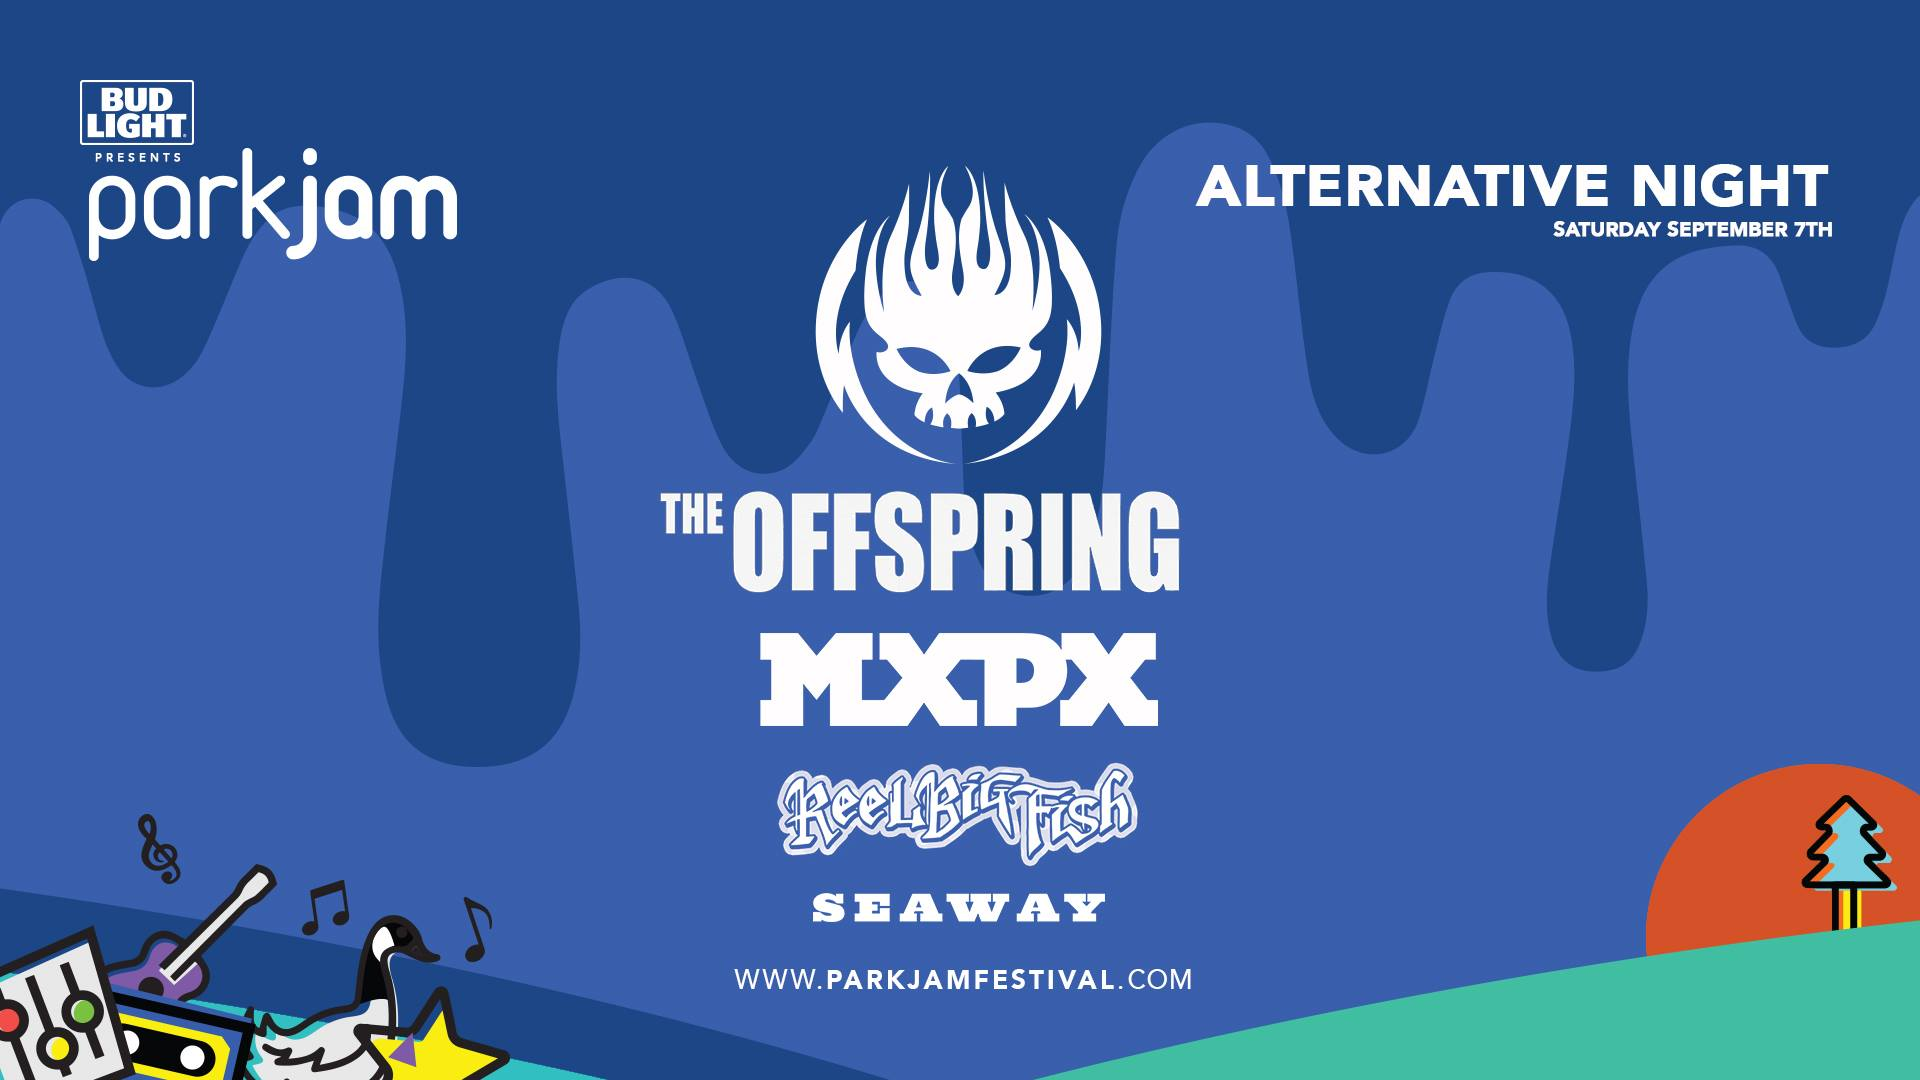 Saturday, SEPTEMBER 7th - Parkjam Alternative Night ft. Mxpx, The Offspring & more.